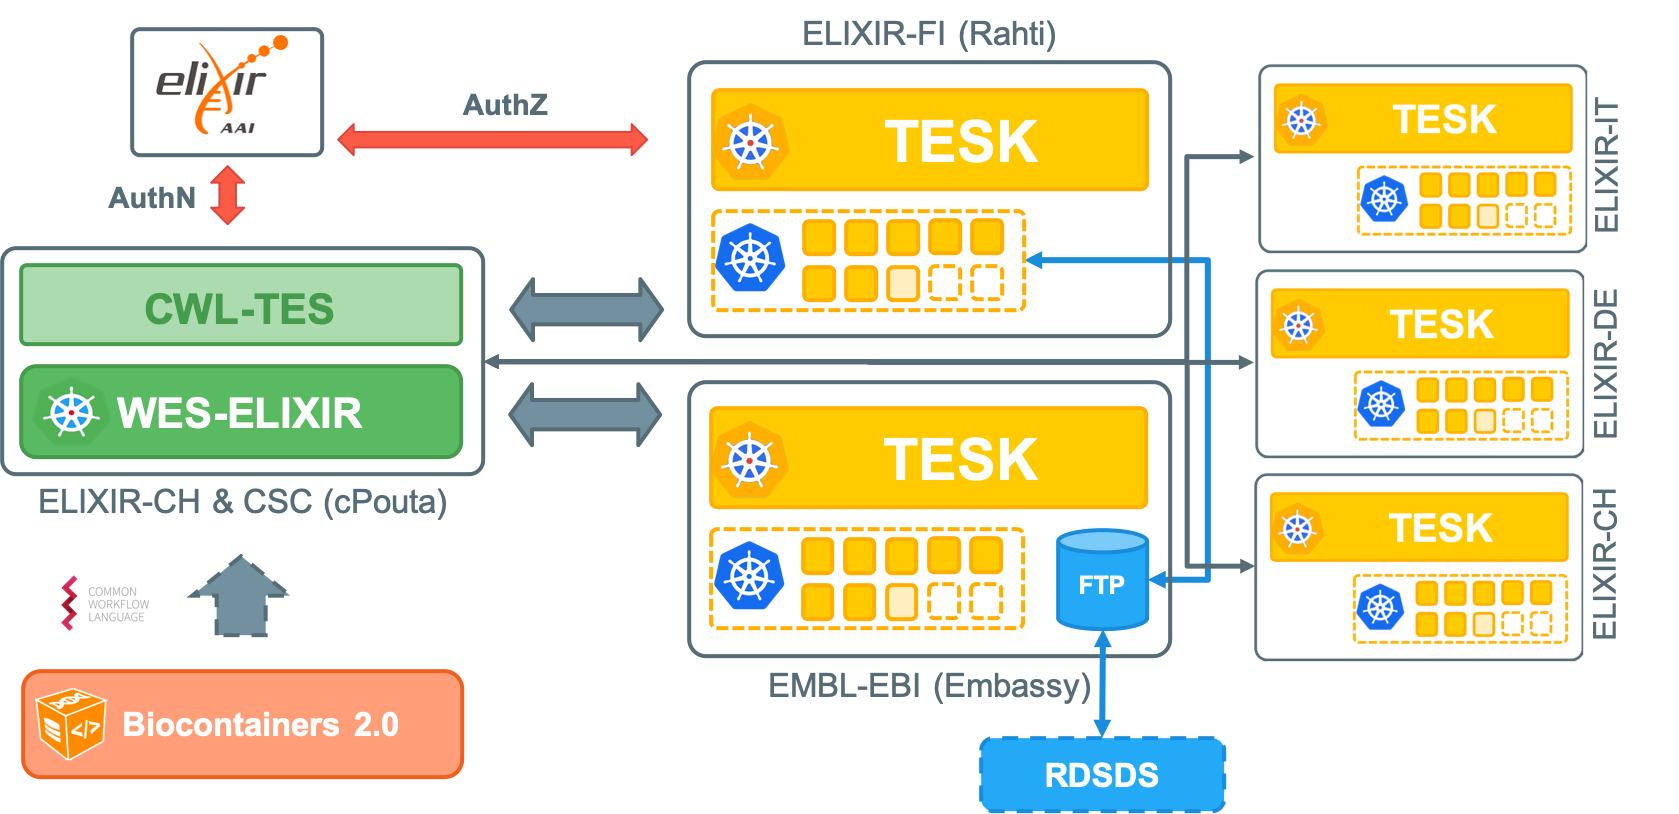 ELIXIR Cloud and AAI Technology Stack